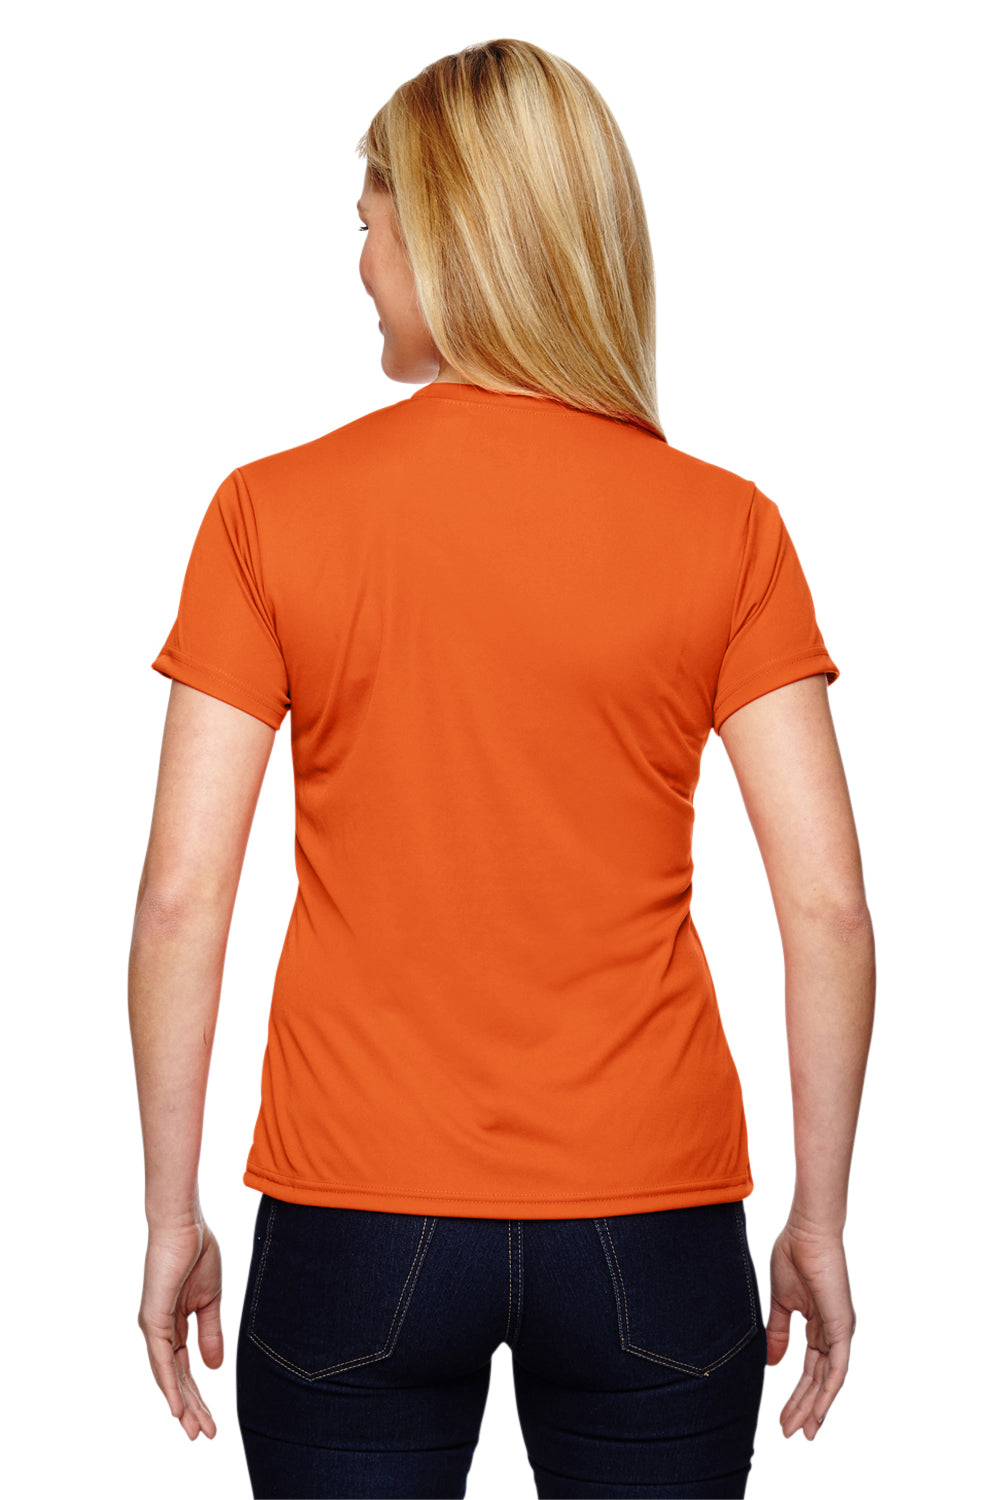 A4 NW3201 Womens Cooling Performance Moisture Wicking Short Sleeve Crewneck T-Shirt Orange Back